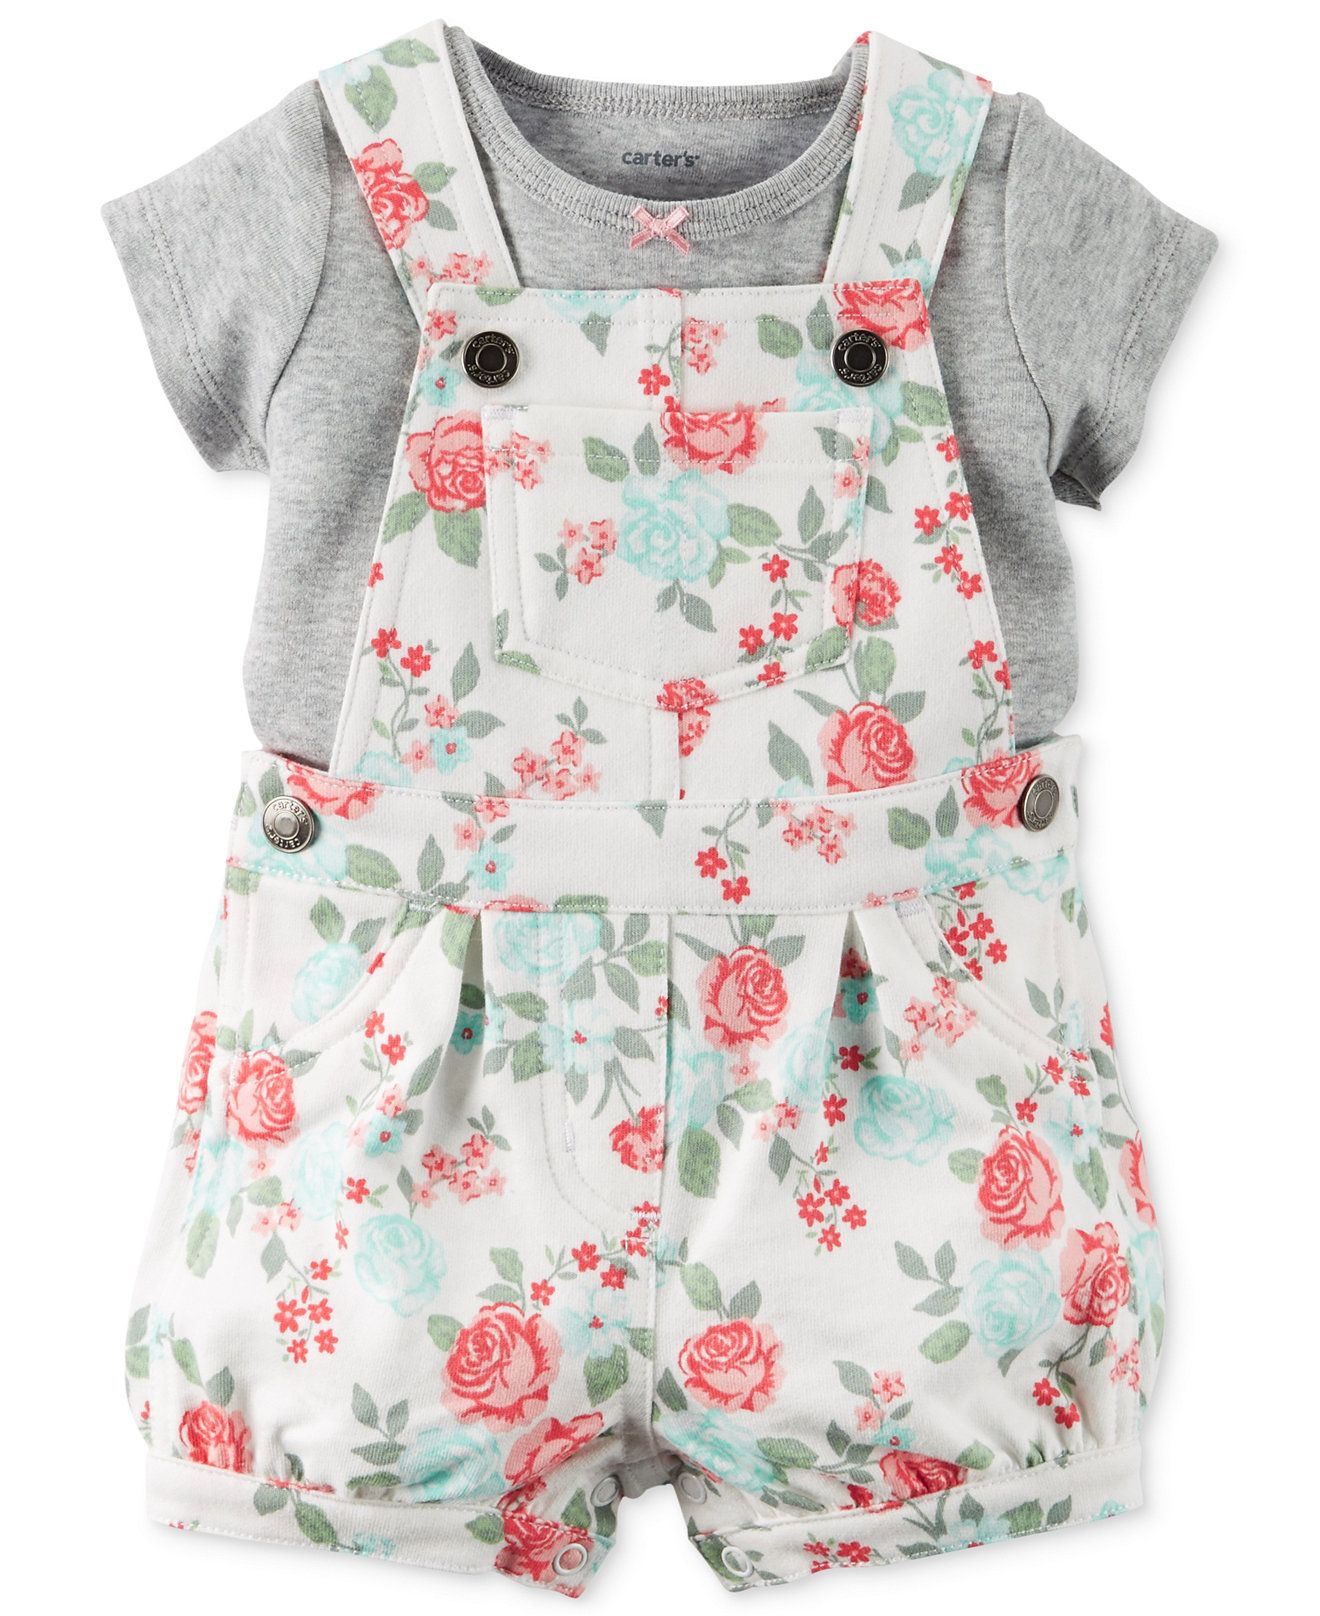 Cute Adorable Floral Romper Baby Girls Sleeveless Tassel Romper ...